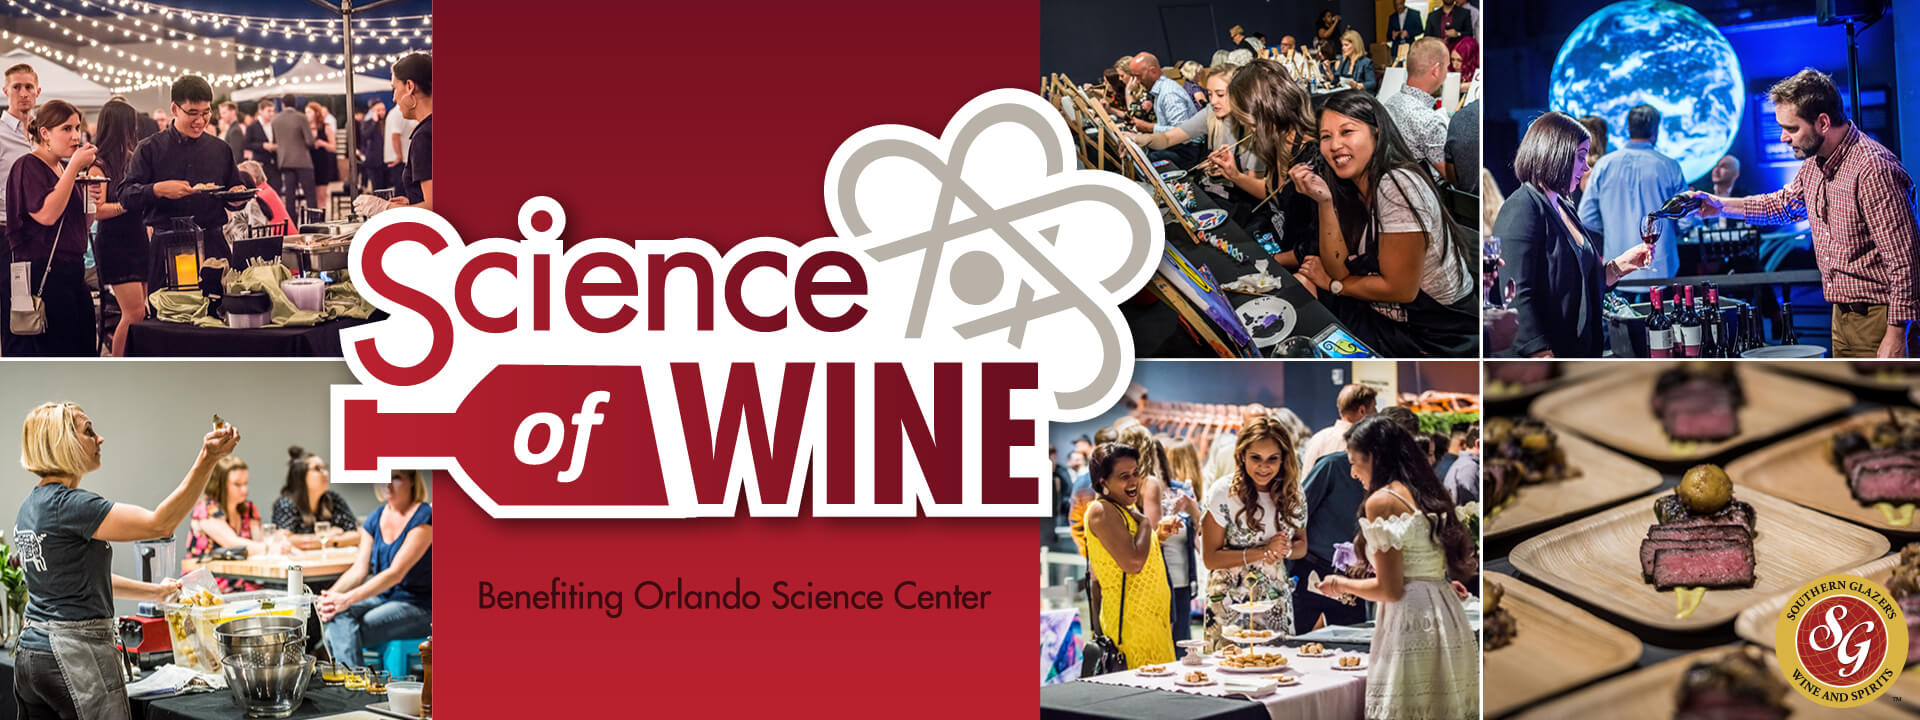 Win Two Tickets to Science of Wine Orlando.jpg